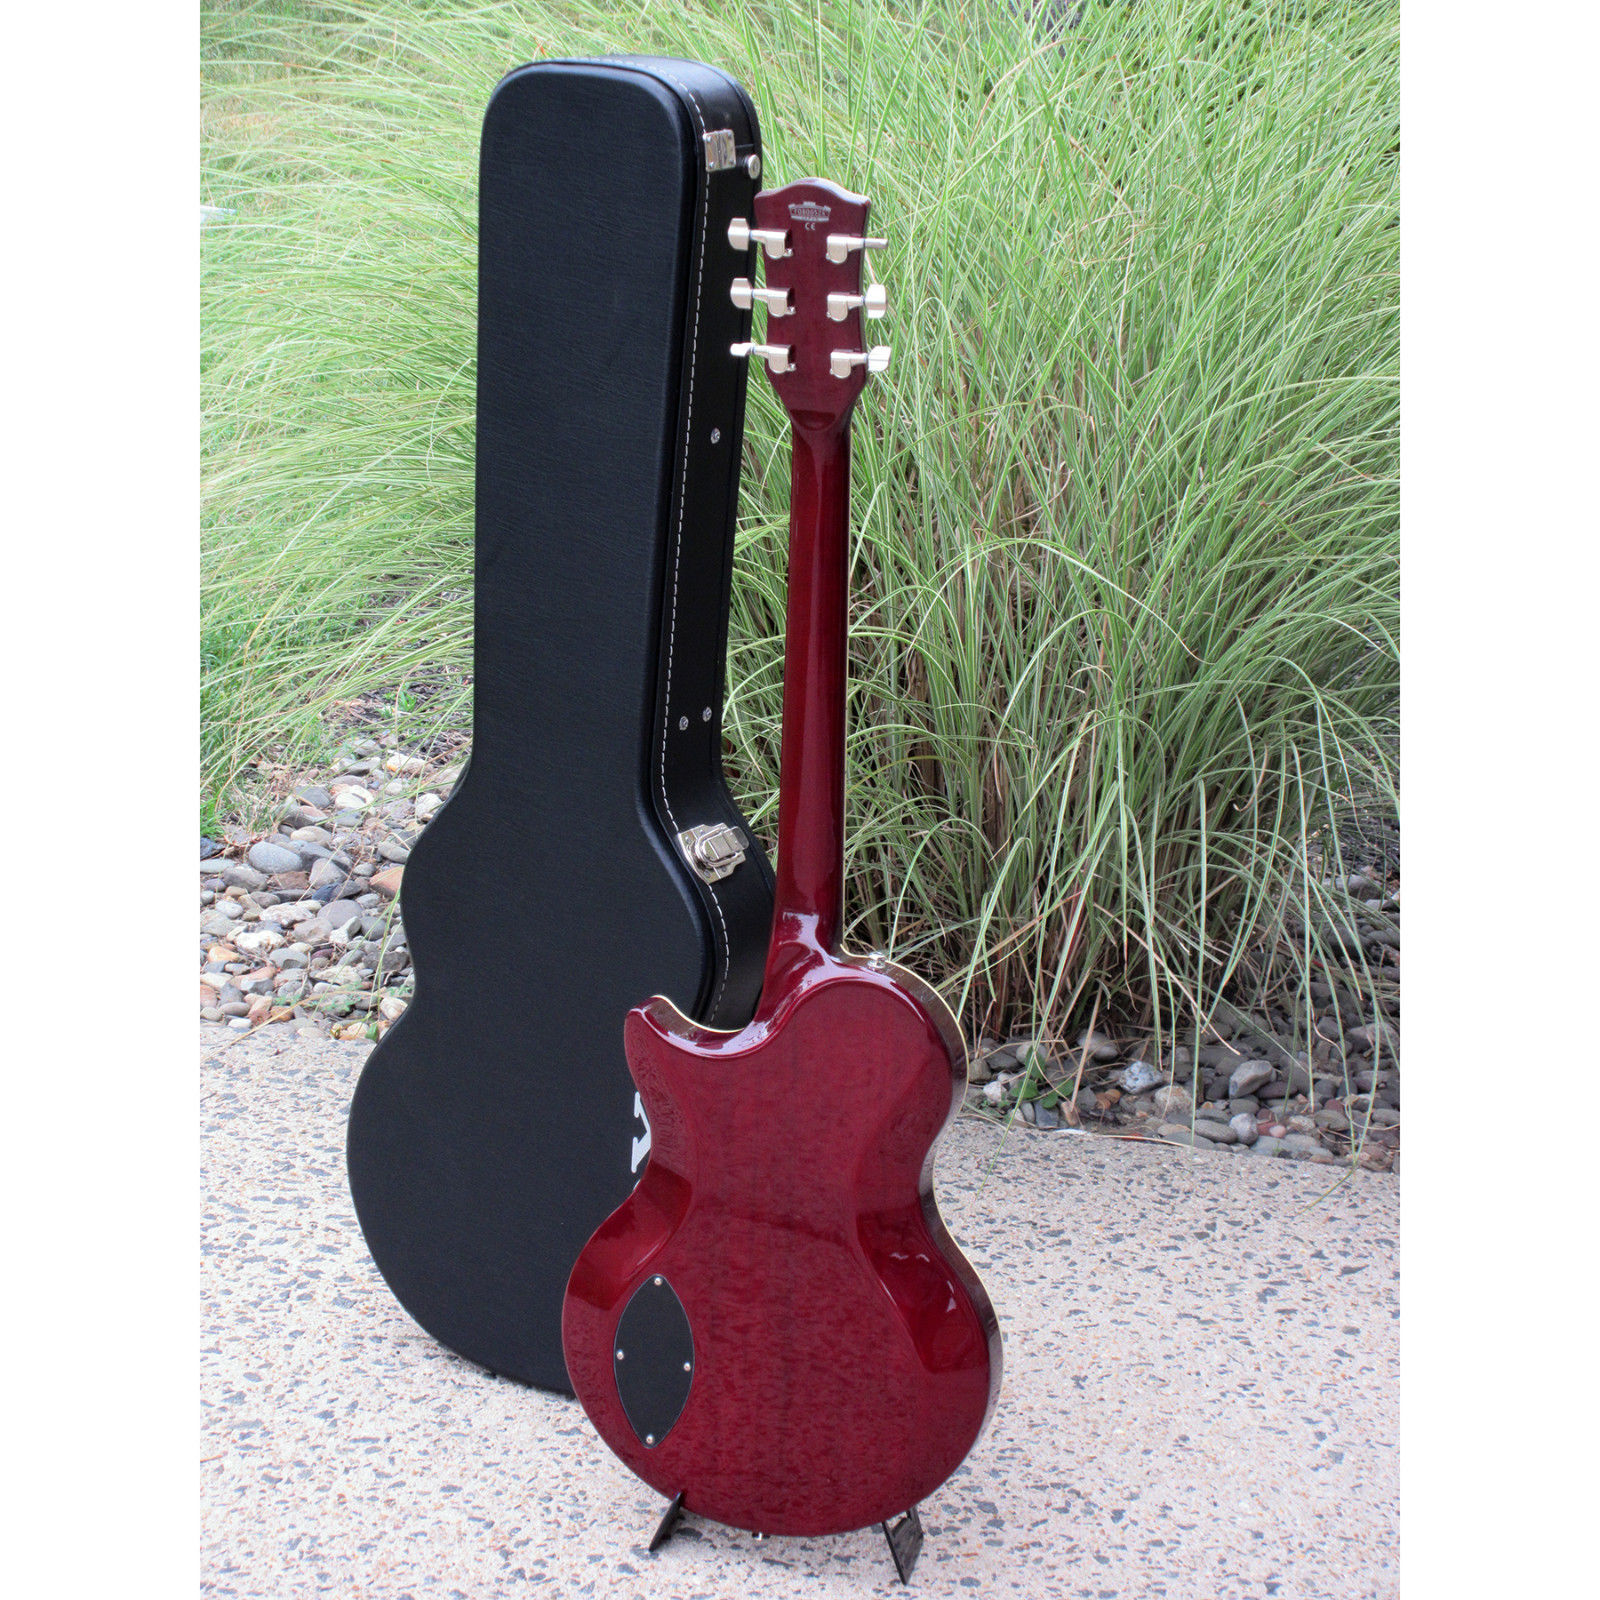 Vox Virage – Deep Cherry VGSCDC Semi-Hollow Electric Guitar with Hard Shell Case